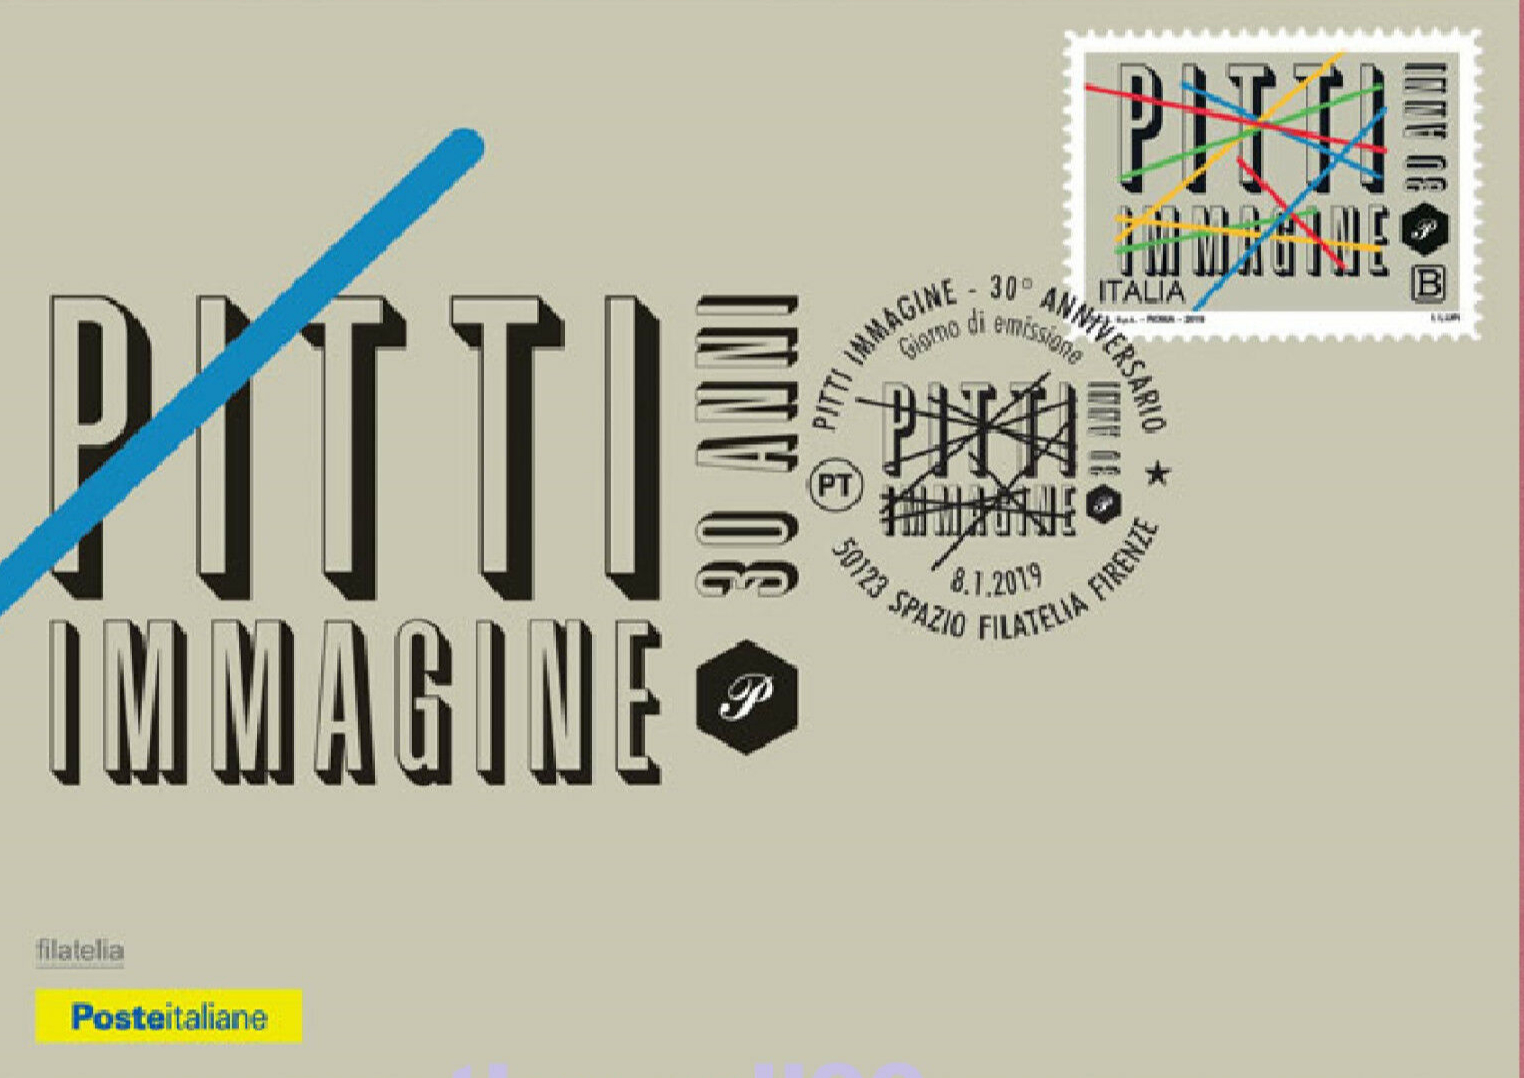 Italy - 30th Anniversary of the Pitti Immagine Foundation (January 8, 2019) first day cover